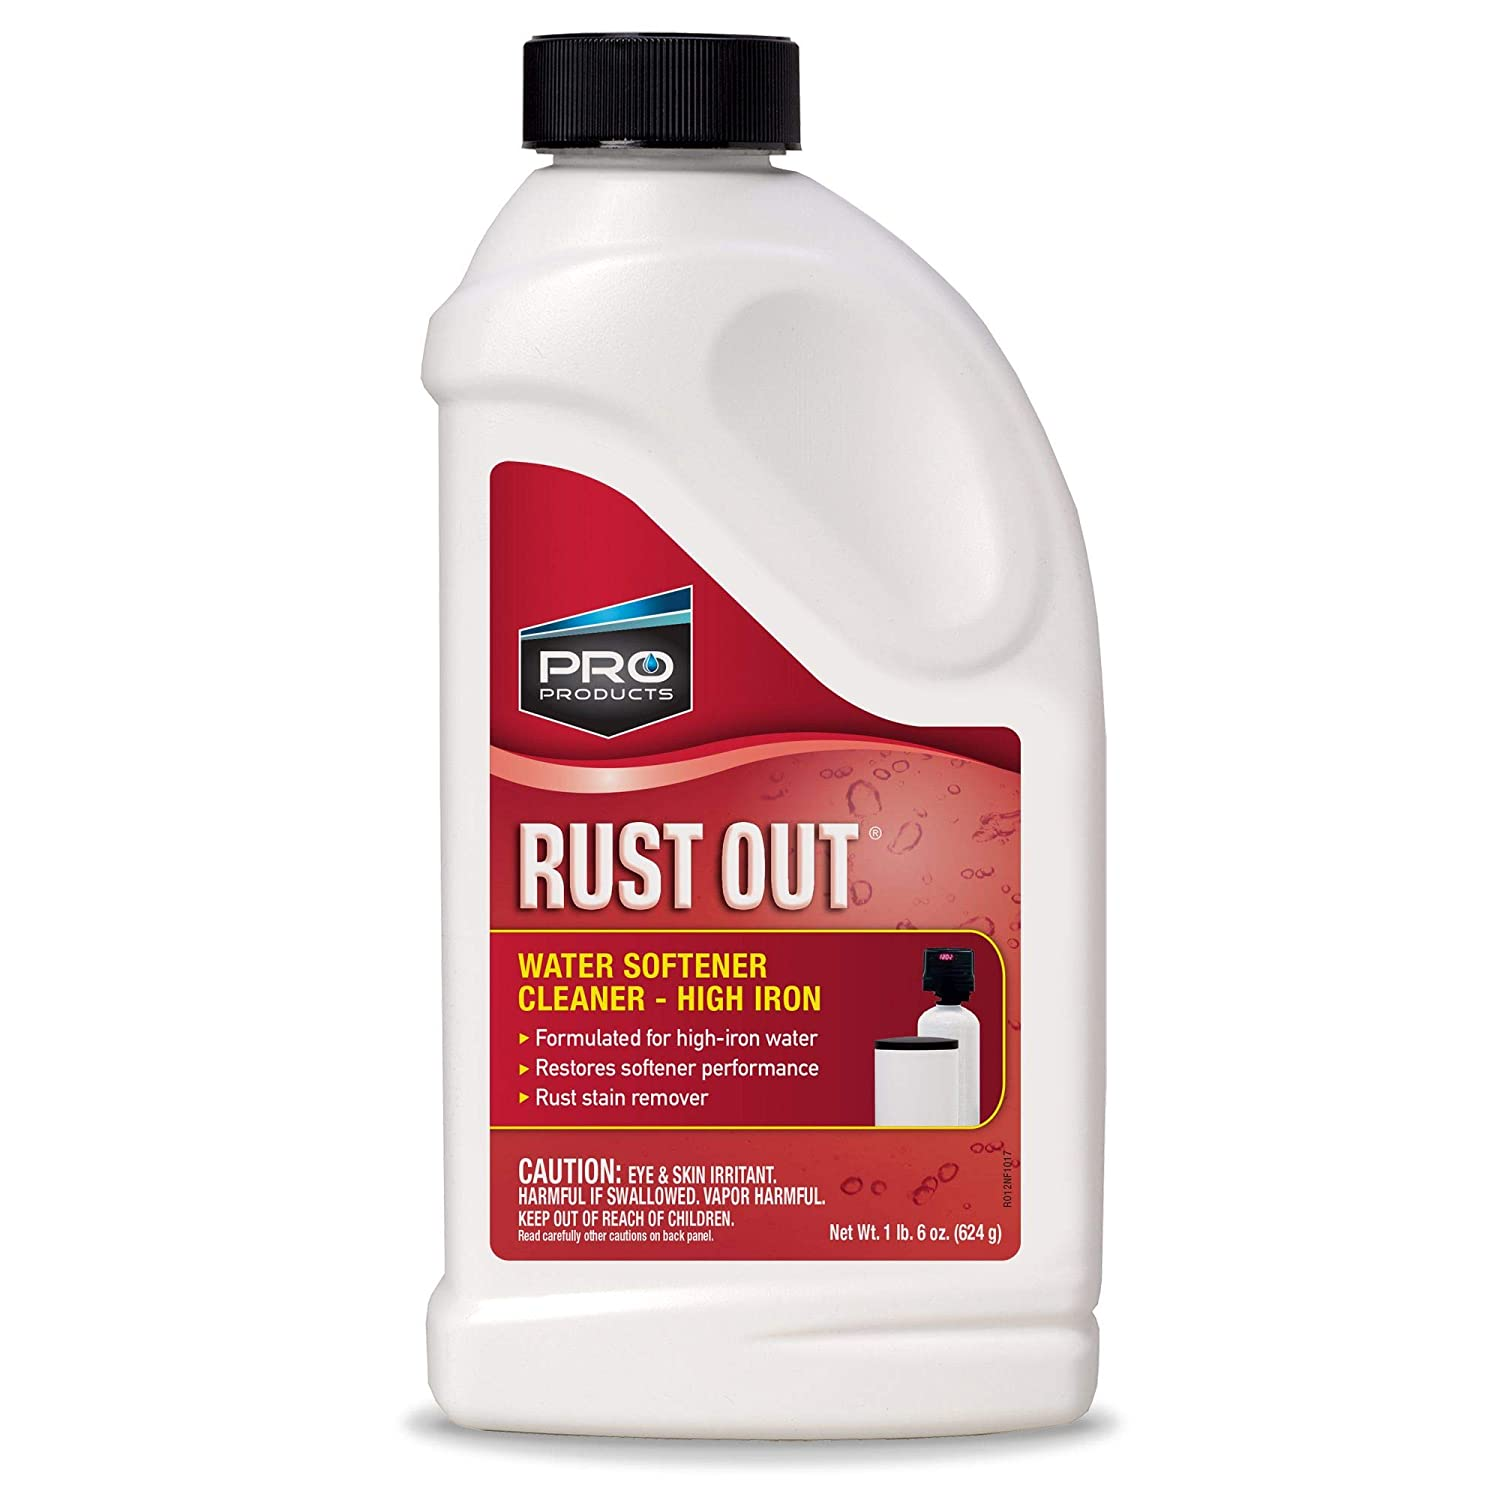 PRO RUST OUT Water Softener Cleaner and Rust Remover. Maintains Performance of Water Softeners with Hard Water